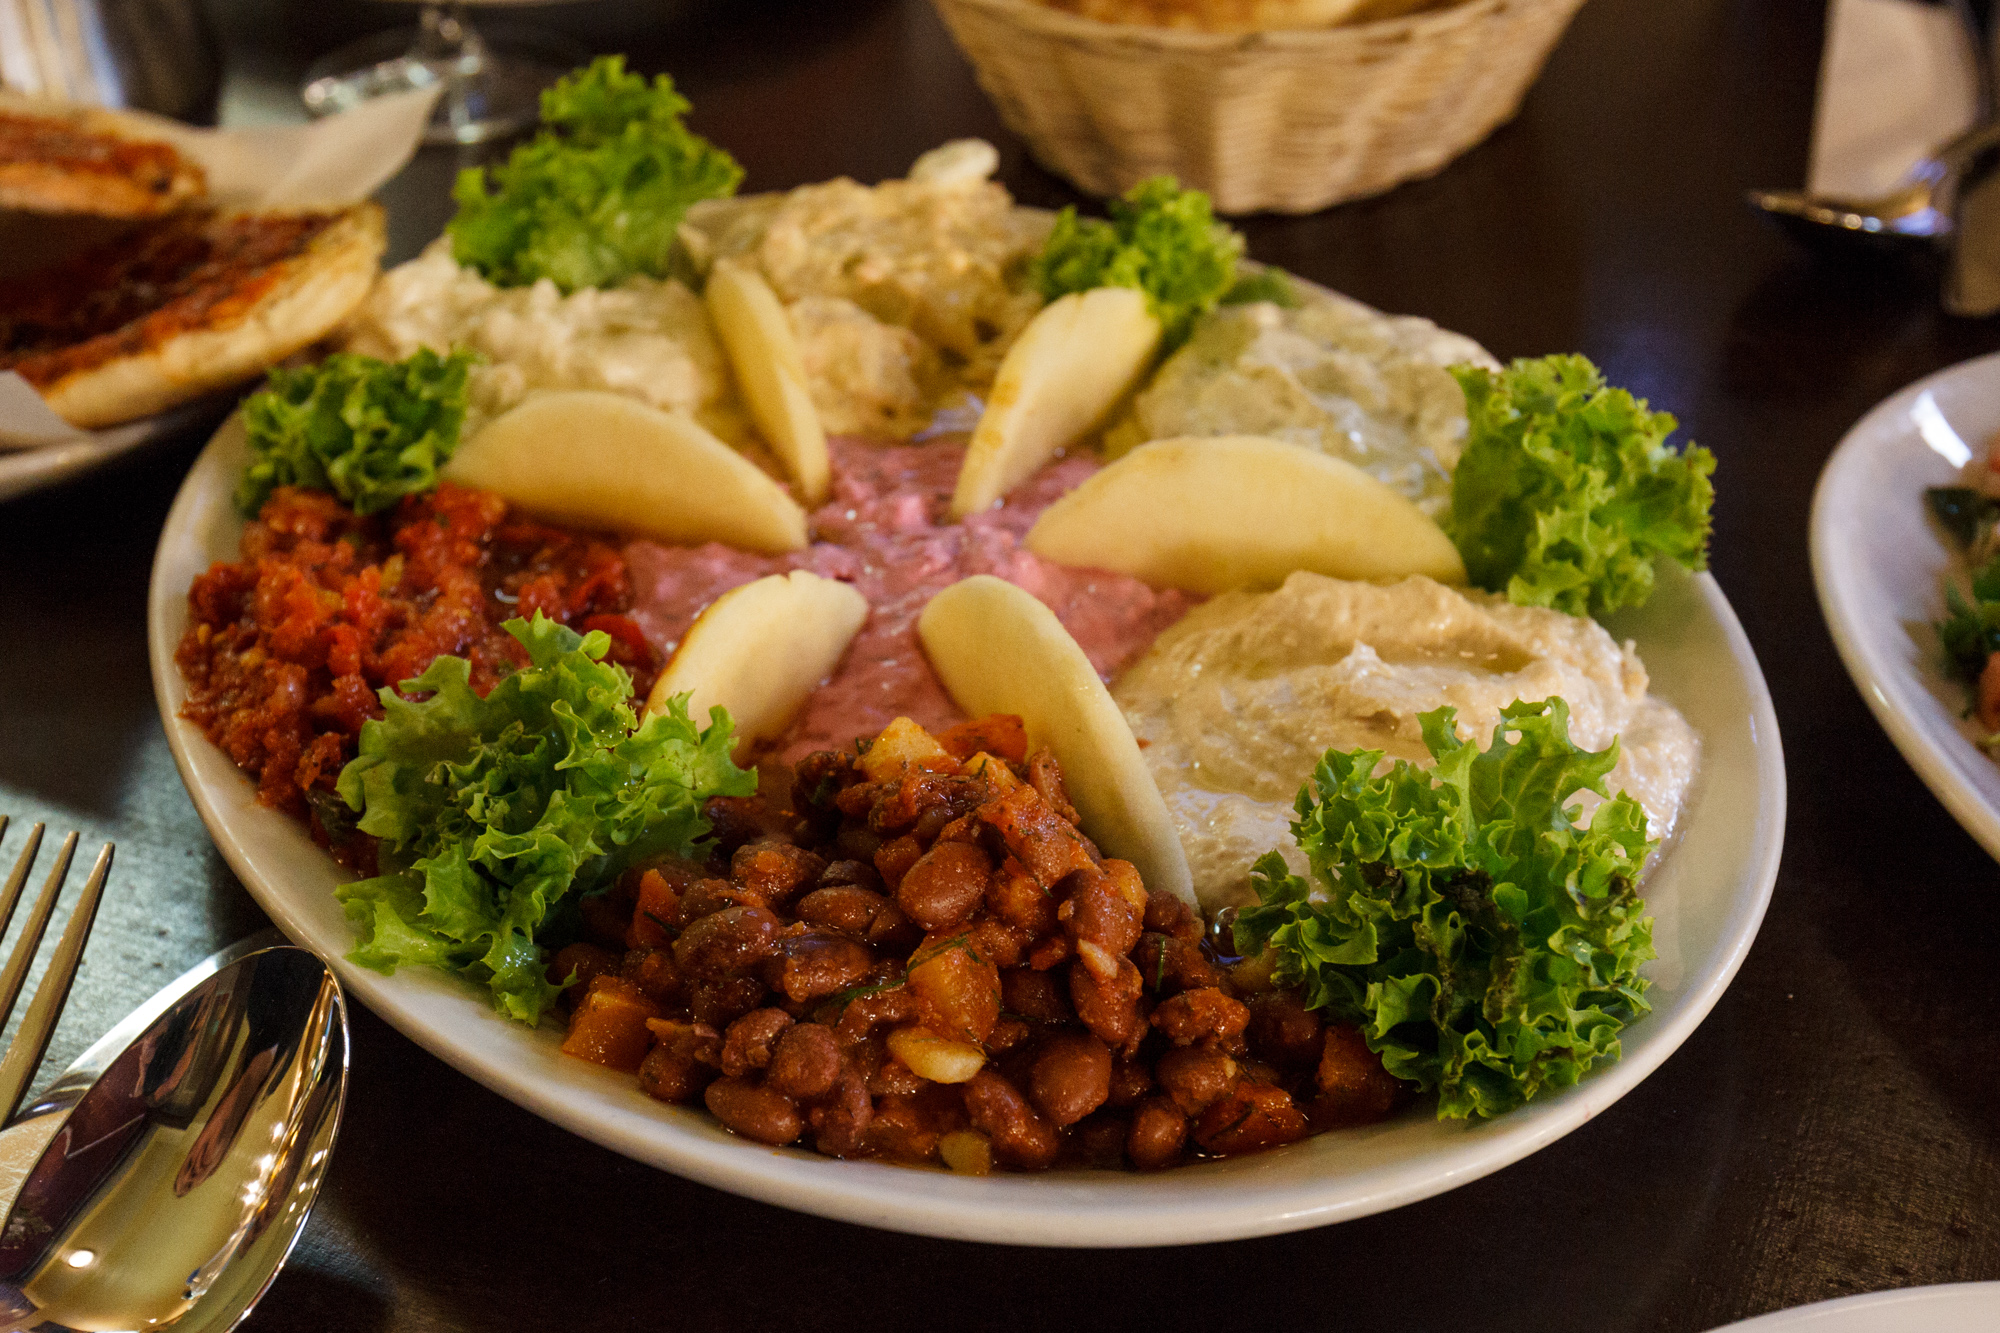 Soğuk Meze Tabaği (Mixed Cold Appetisers Plate) at Caglayan Grillhaus Berlin